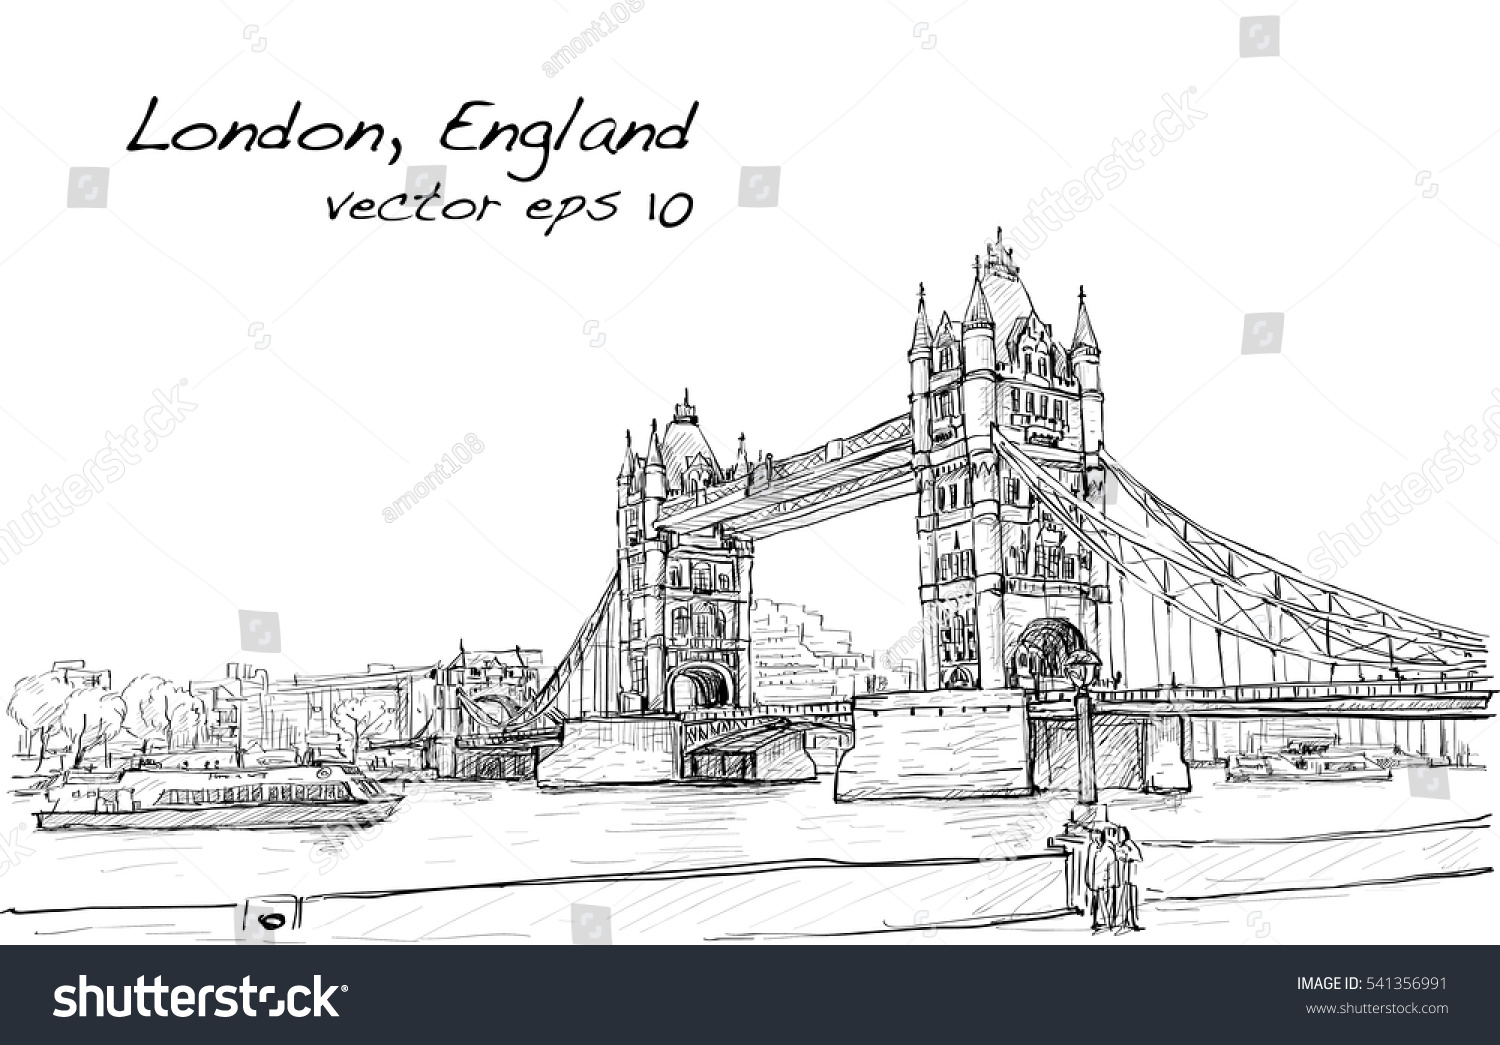 Cityscape Drawing Sketch Tower Bridge London England Illustration Vector